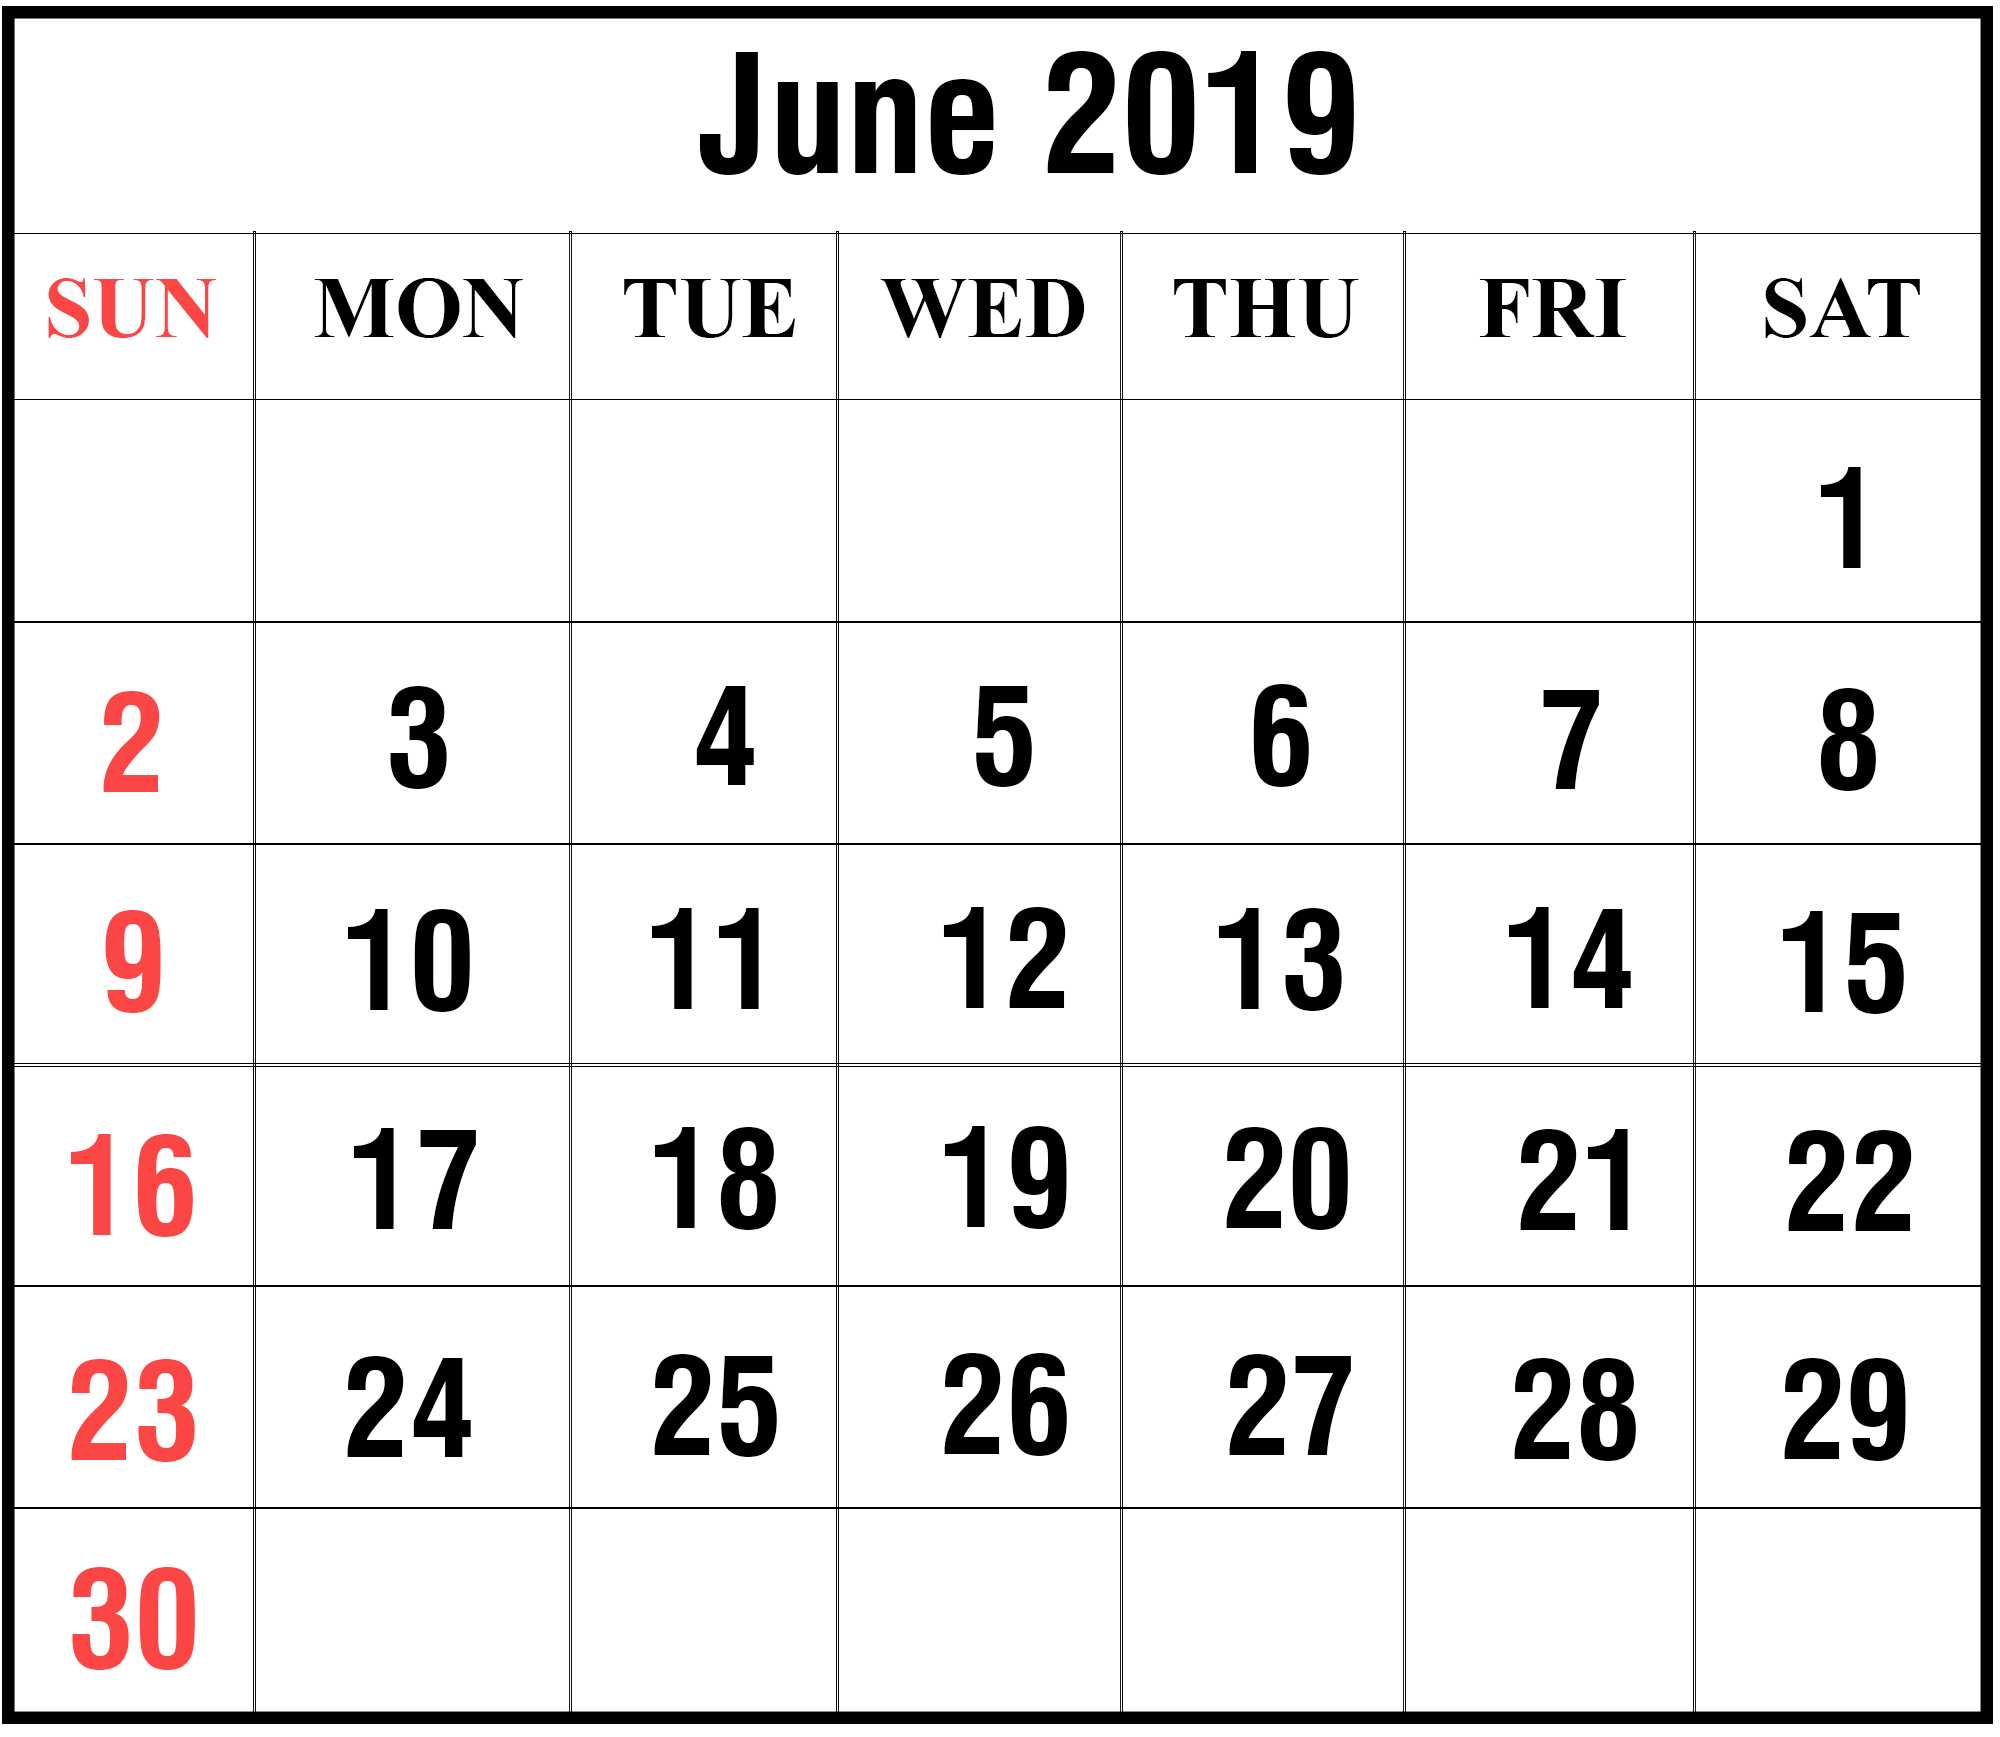 2020 June Holidays Calendar